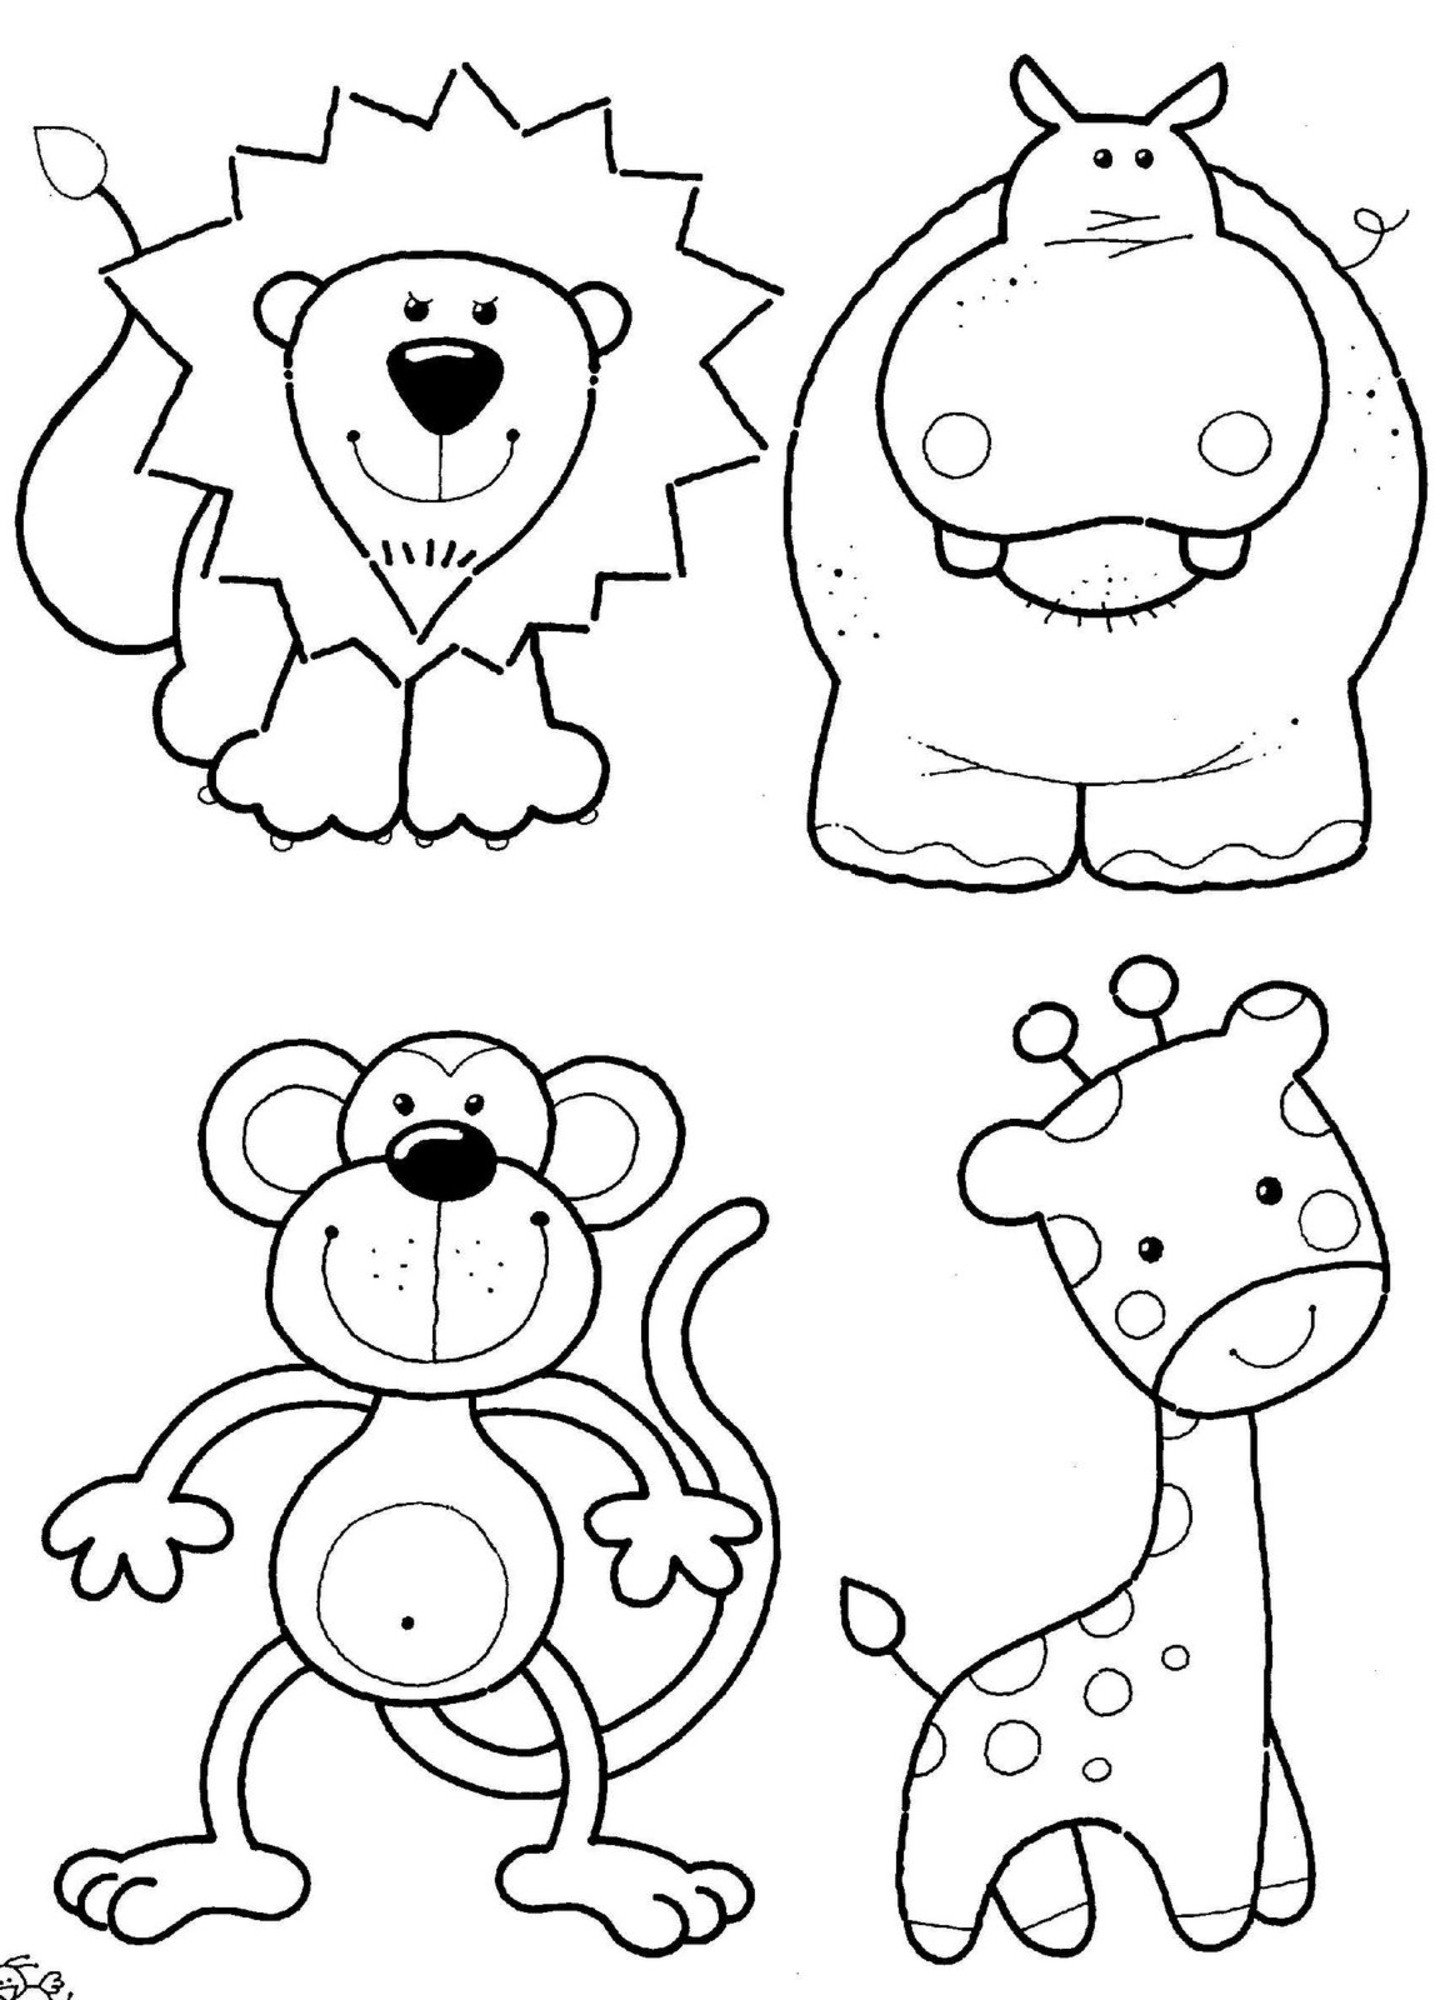 coloring zoo animals zoo animal coloring page 2 zoo coloring animals